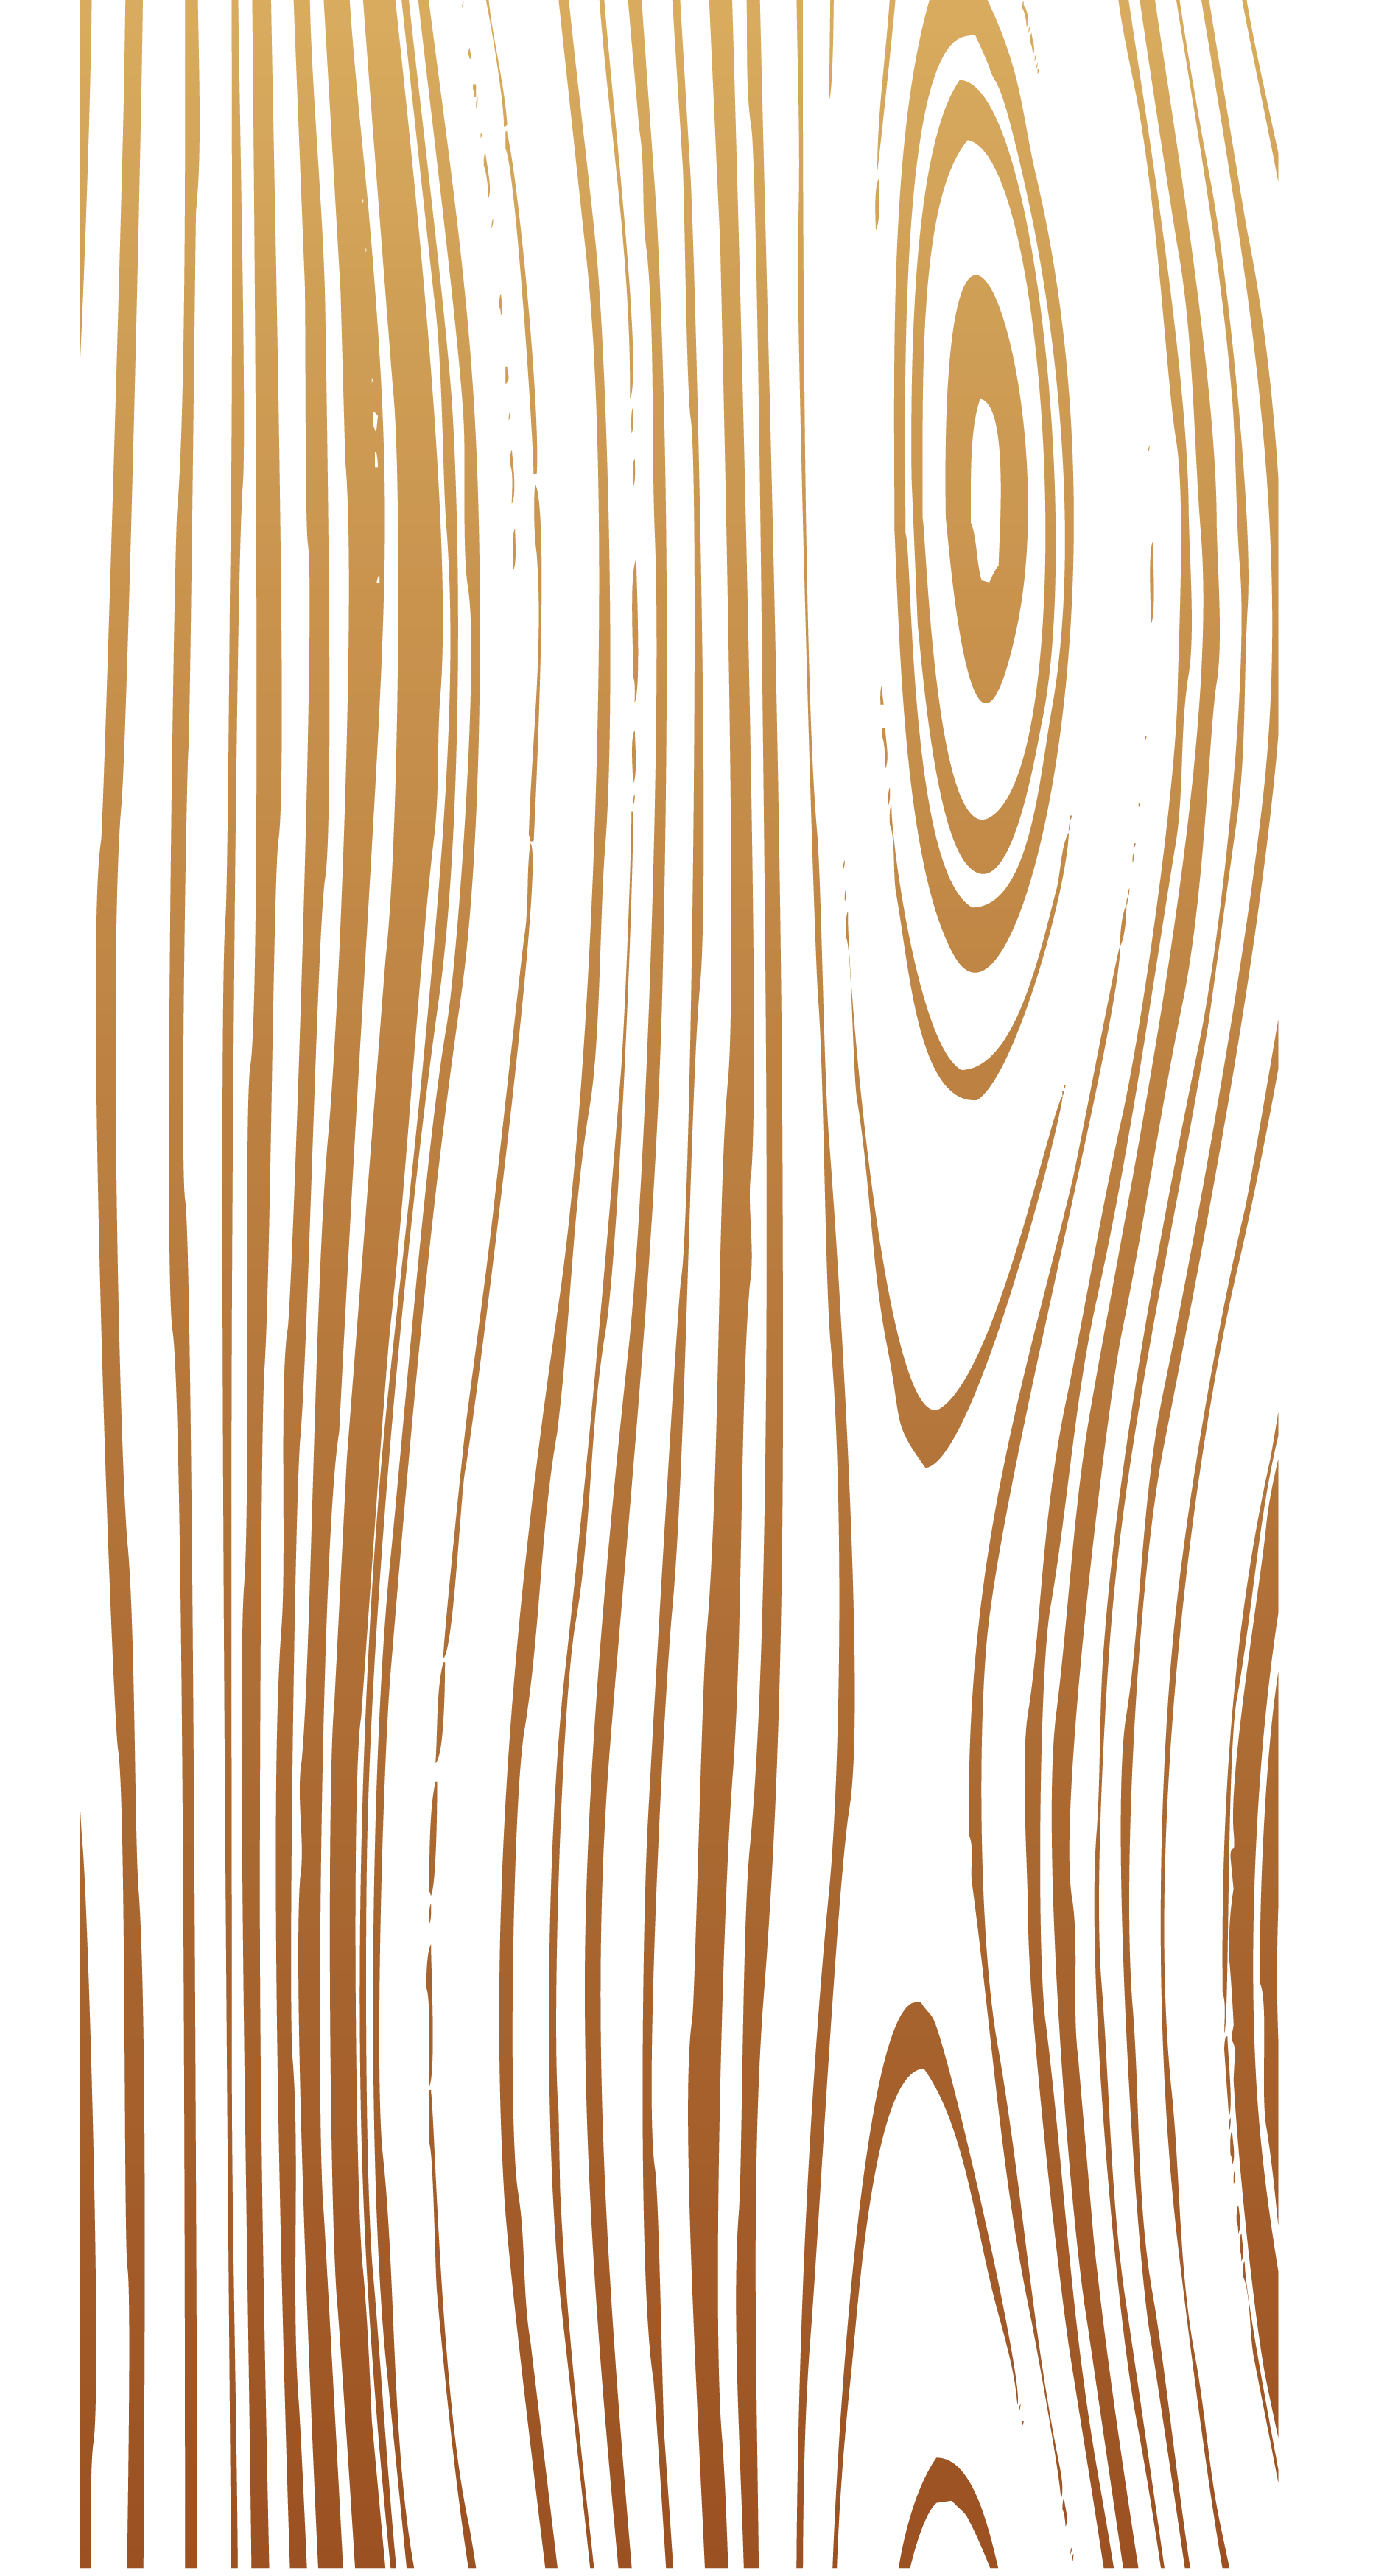 Transparent wood effect clipart